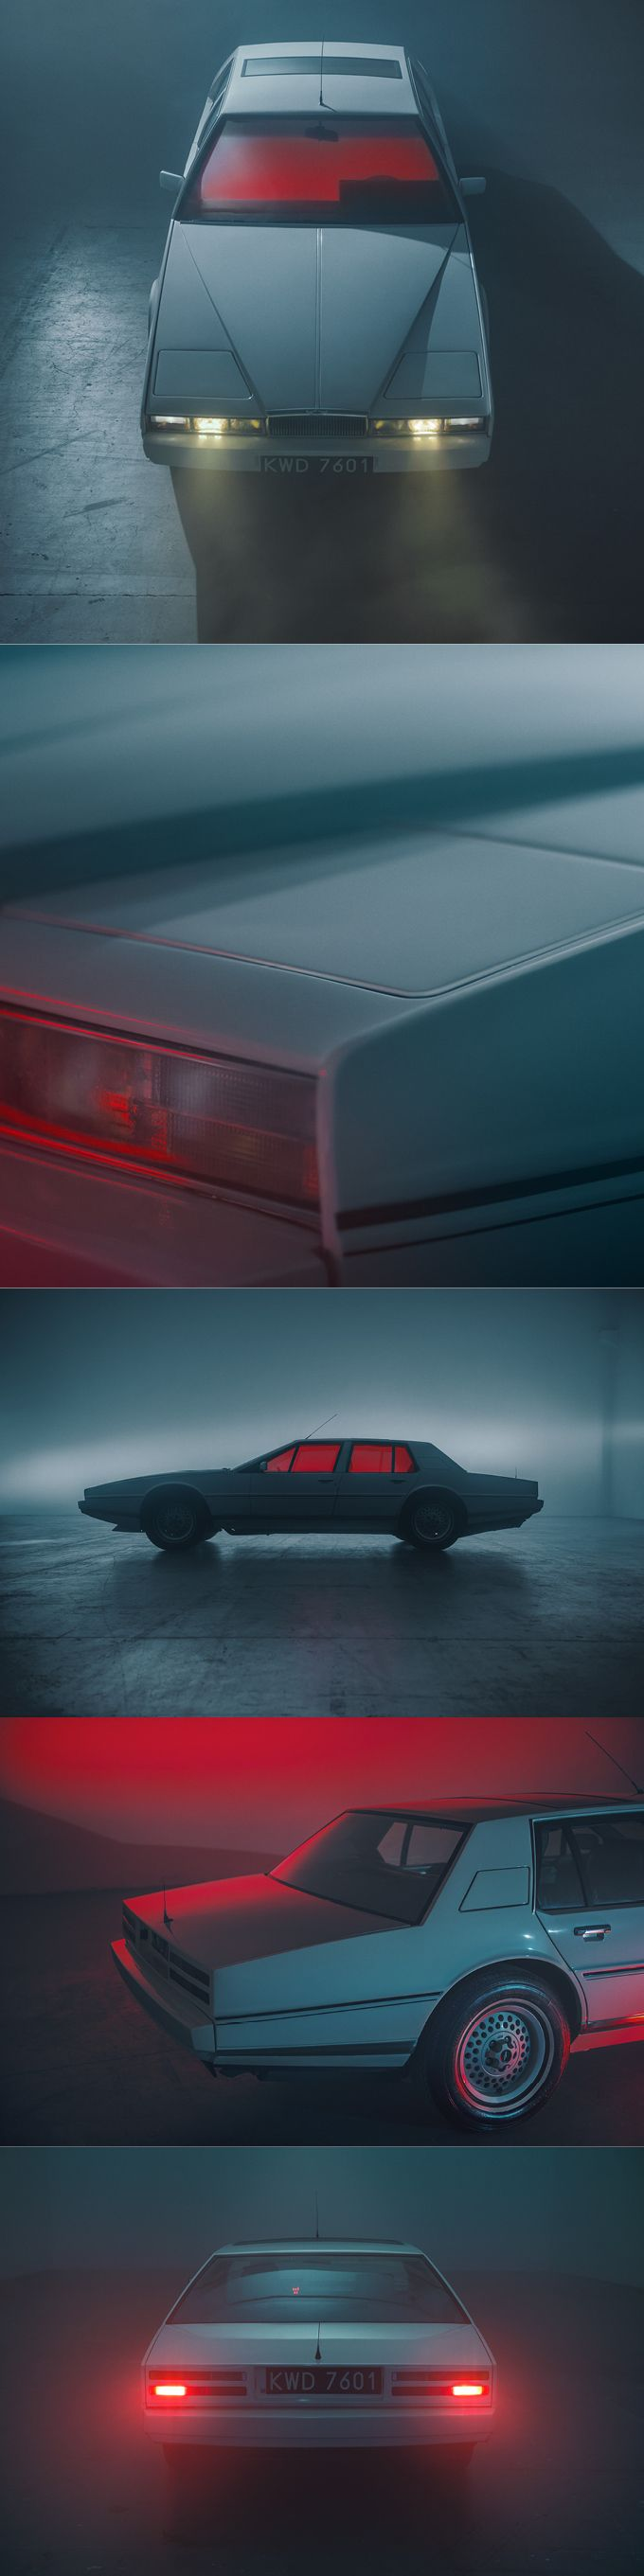 1976 Aston Martin Lagonda / 645 produced / red white / UK / William Towns / Behance / 17-335